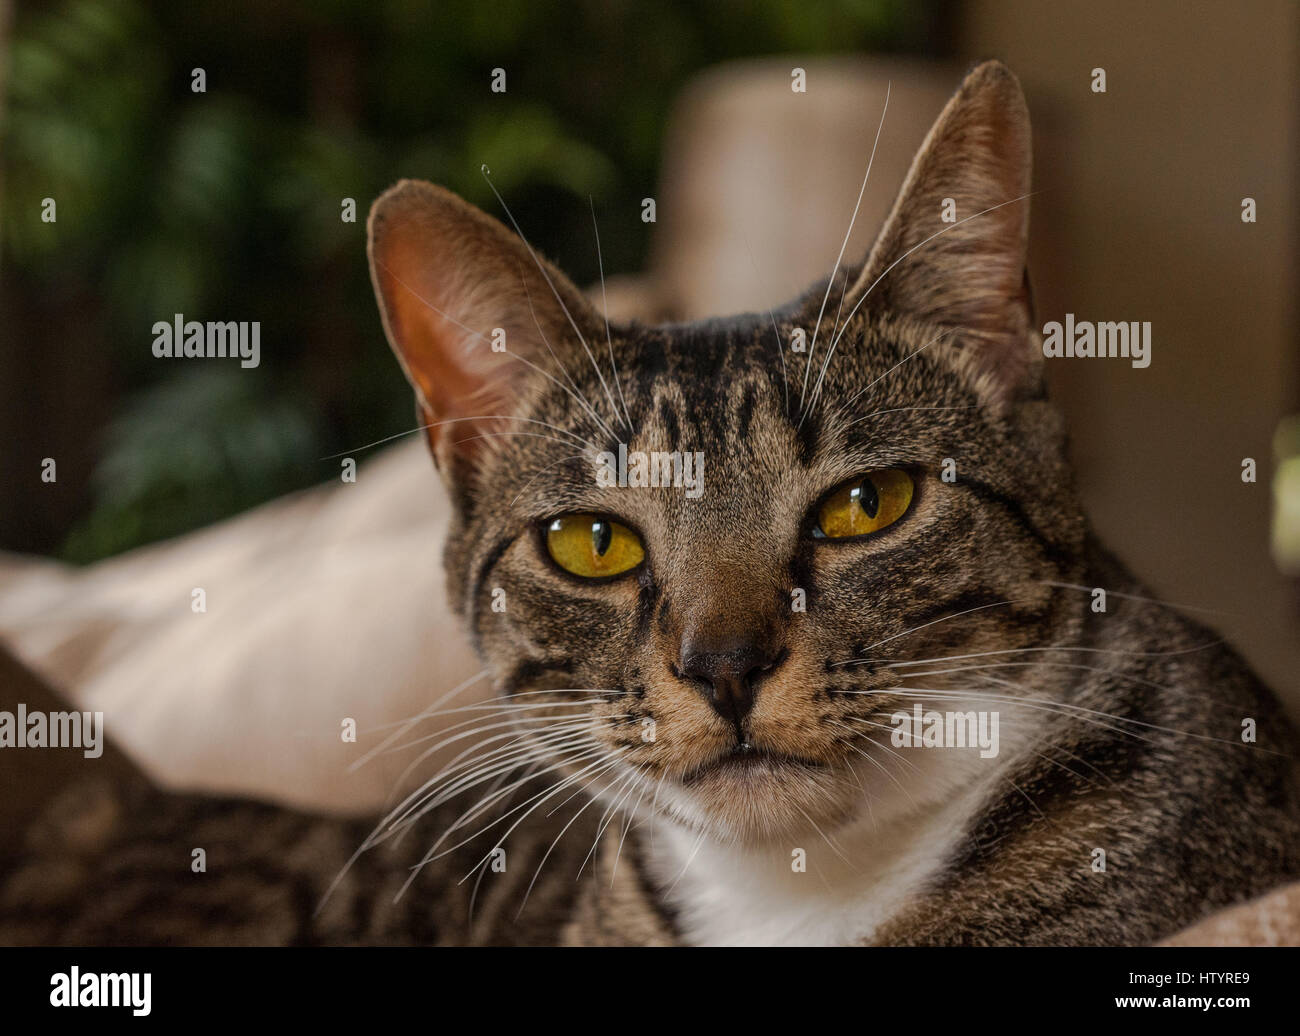 Gray White And Black Striped Cat Face Stock Photo Alamy